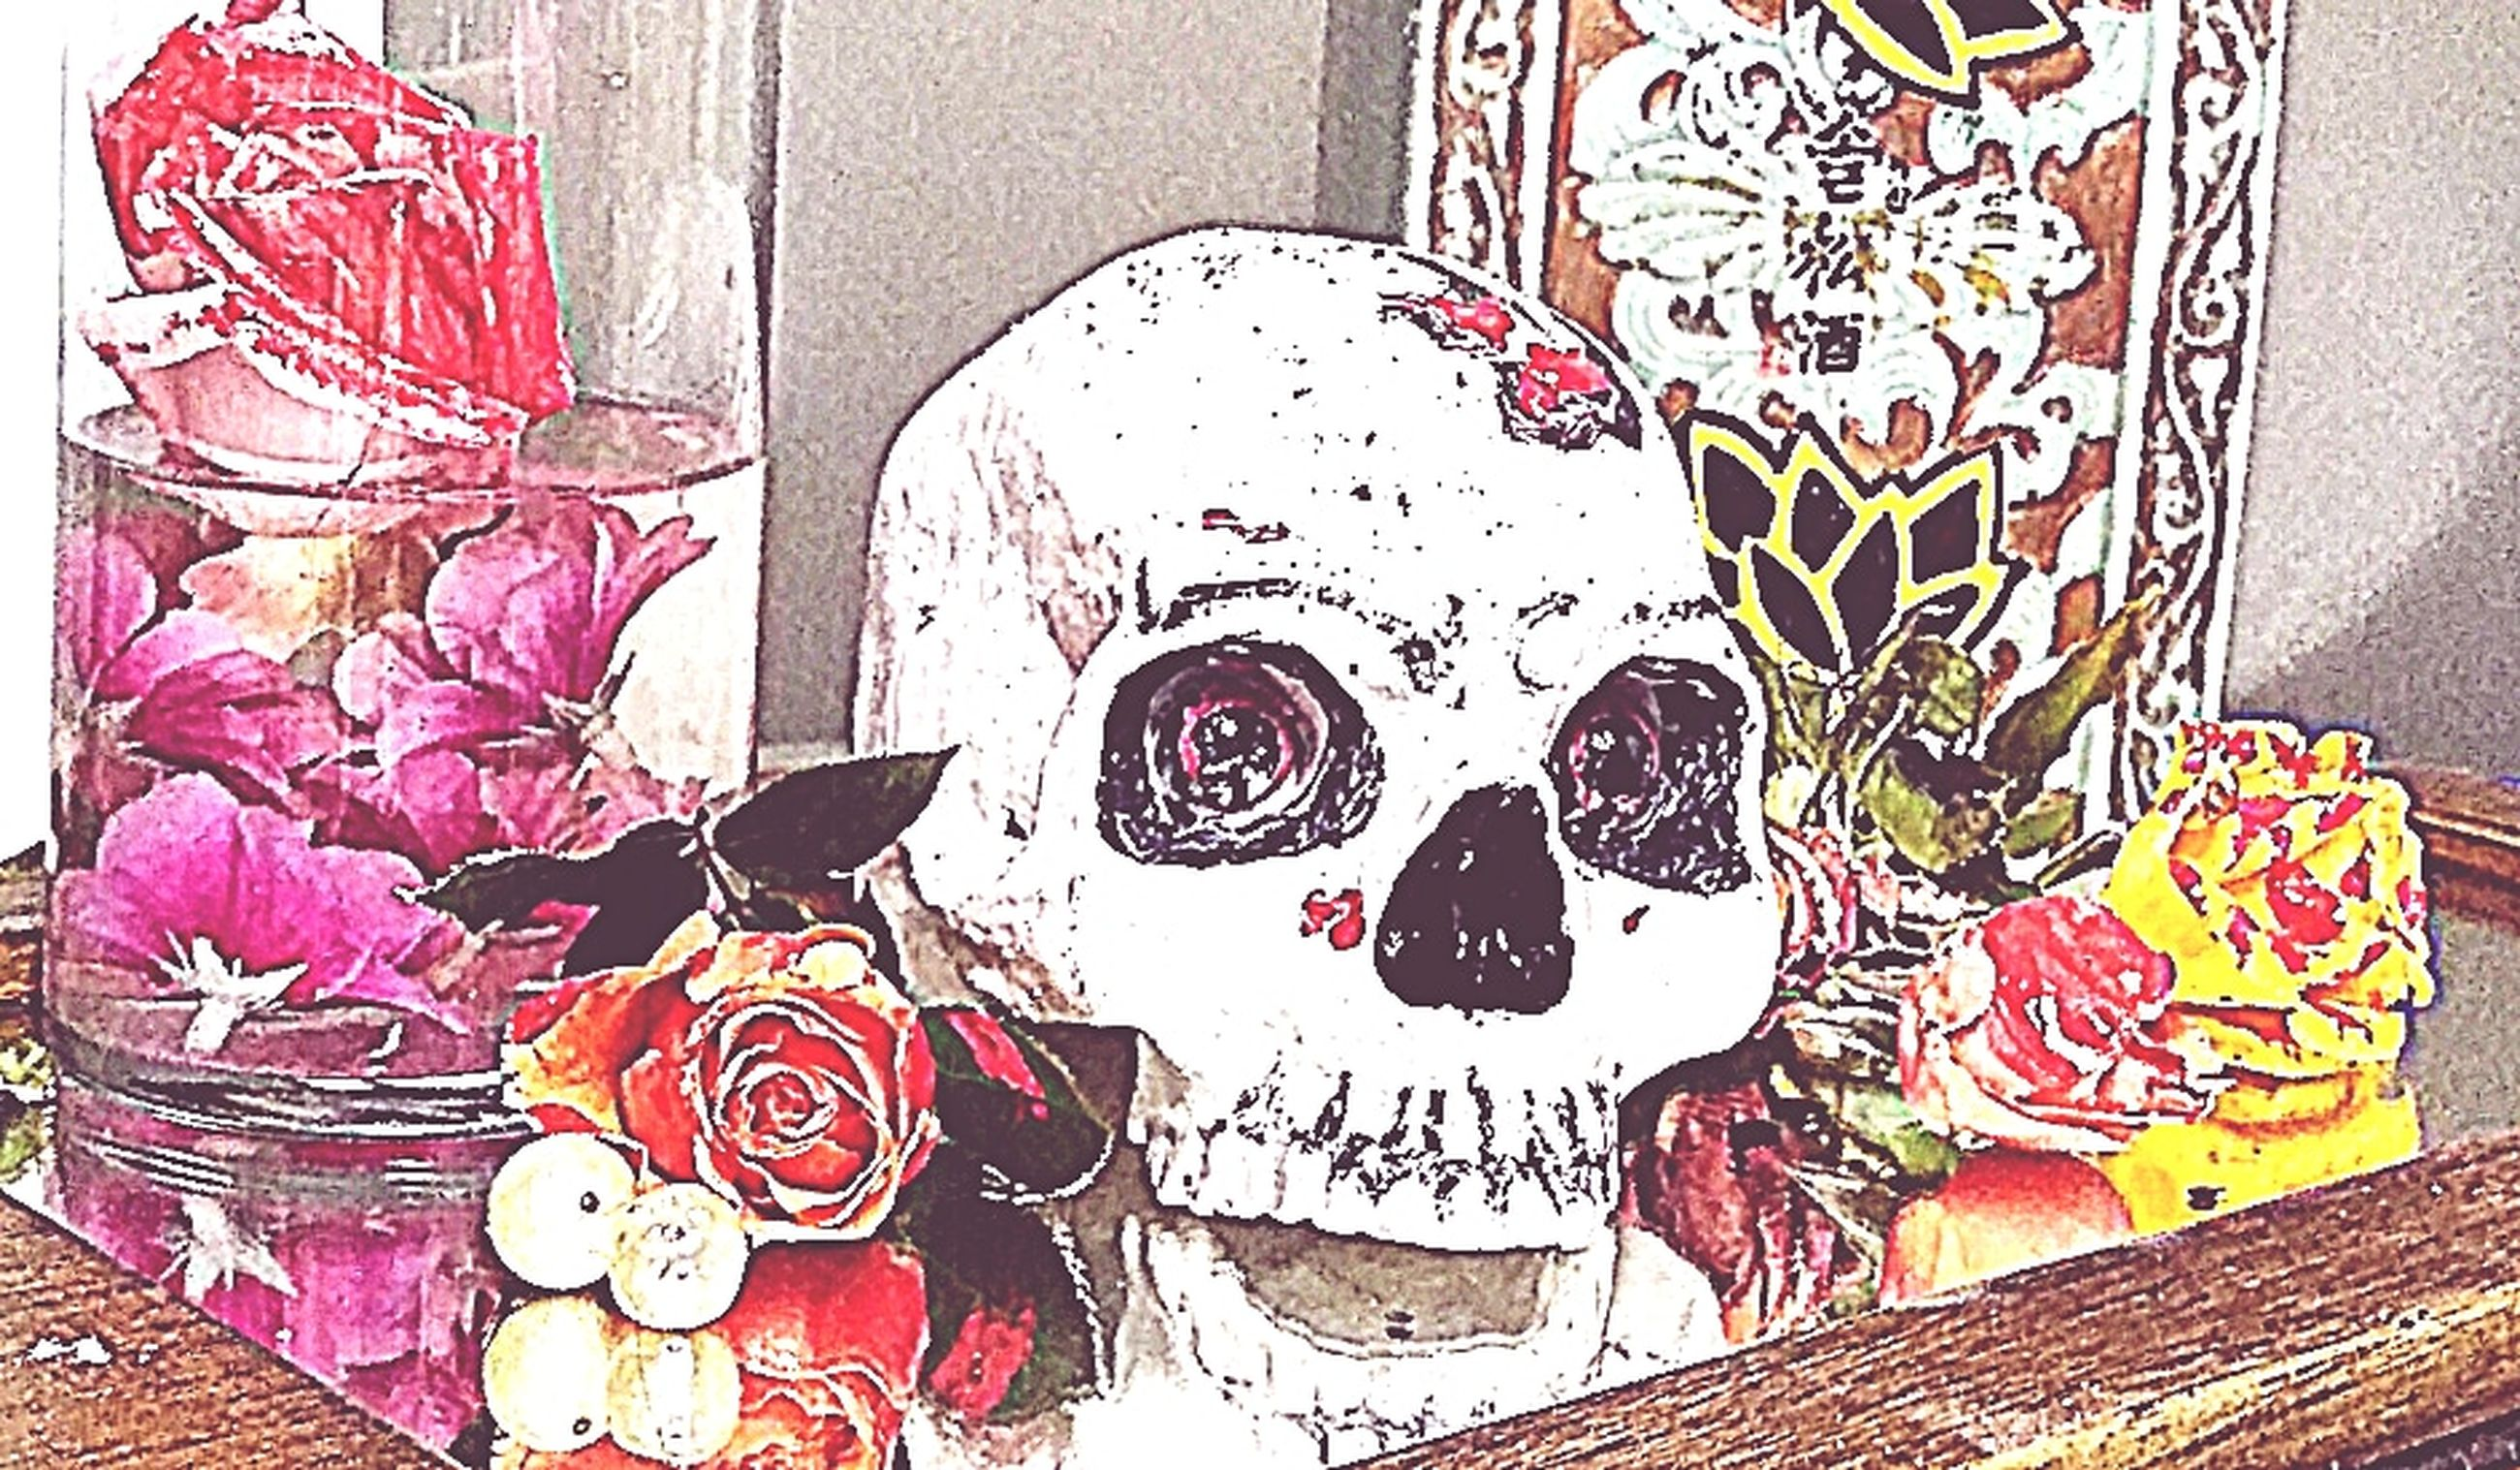 representation, creativity, no people, art and craft, disguise, human representation, mask, celebration, human skeleton, close-up, mask - disguise, skeleton, indoors, halloween, event, still life, spooky, carnival - celebration event, festival, floral pattern